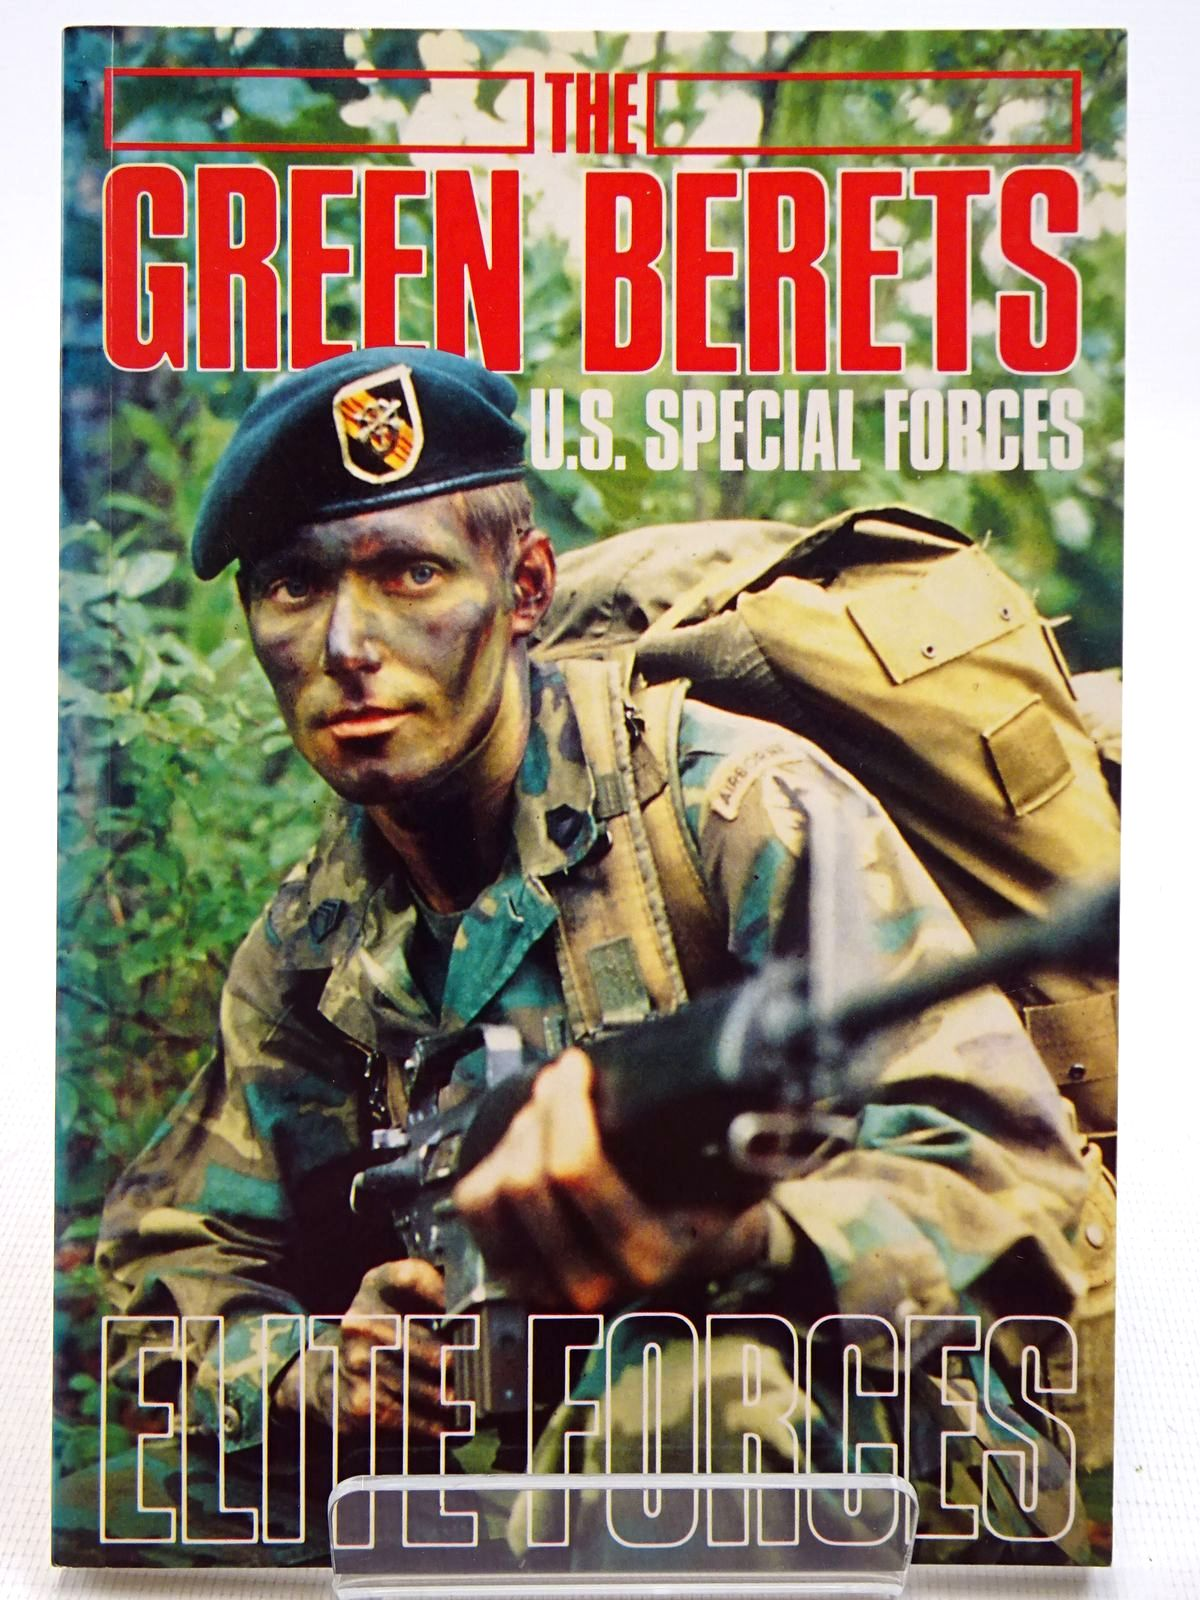 Photo of THE GREEN BERETS U.S. SPECIAL FORCES written by Brown, Ashley et al, published by Orbis Publishing (STOCK CODE: 2129180)  for sale by Stella & Rose's Books